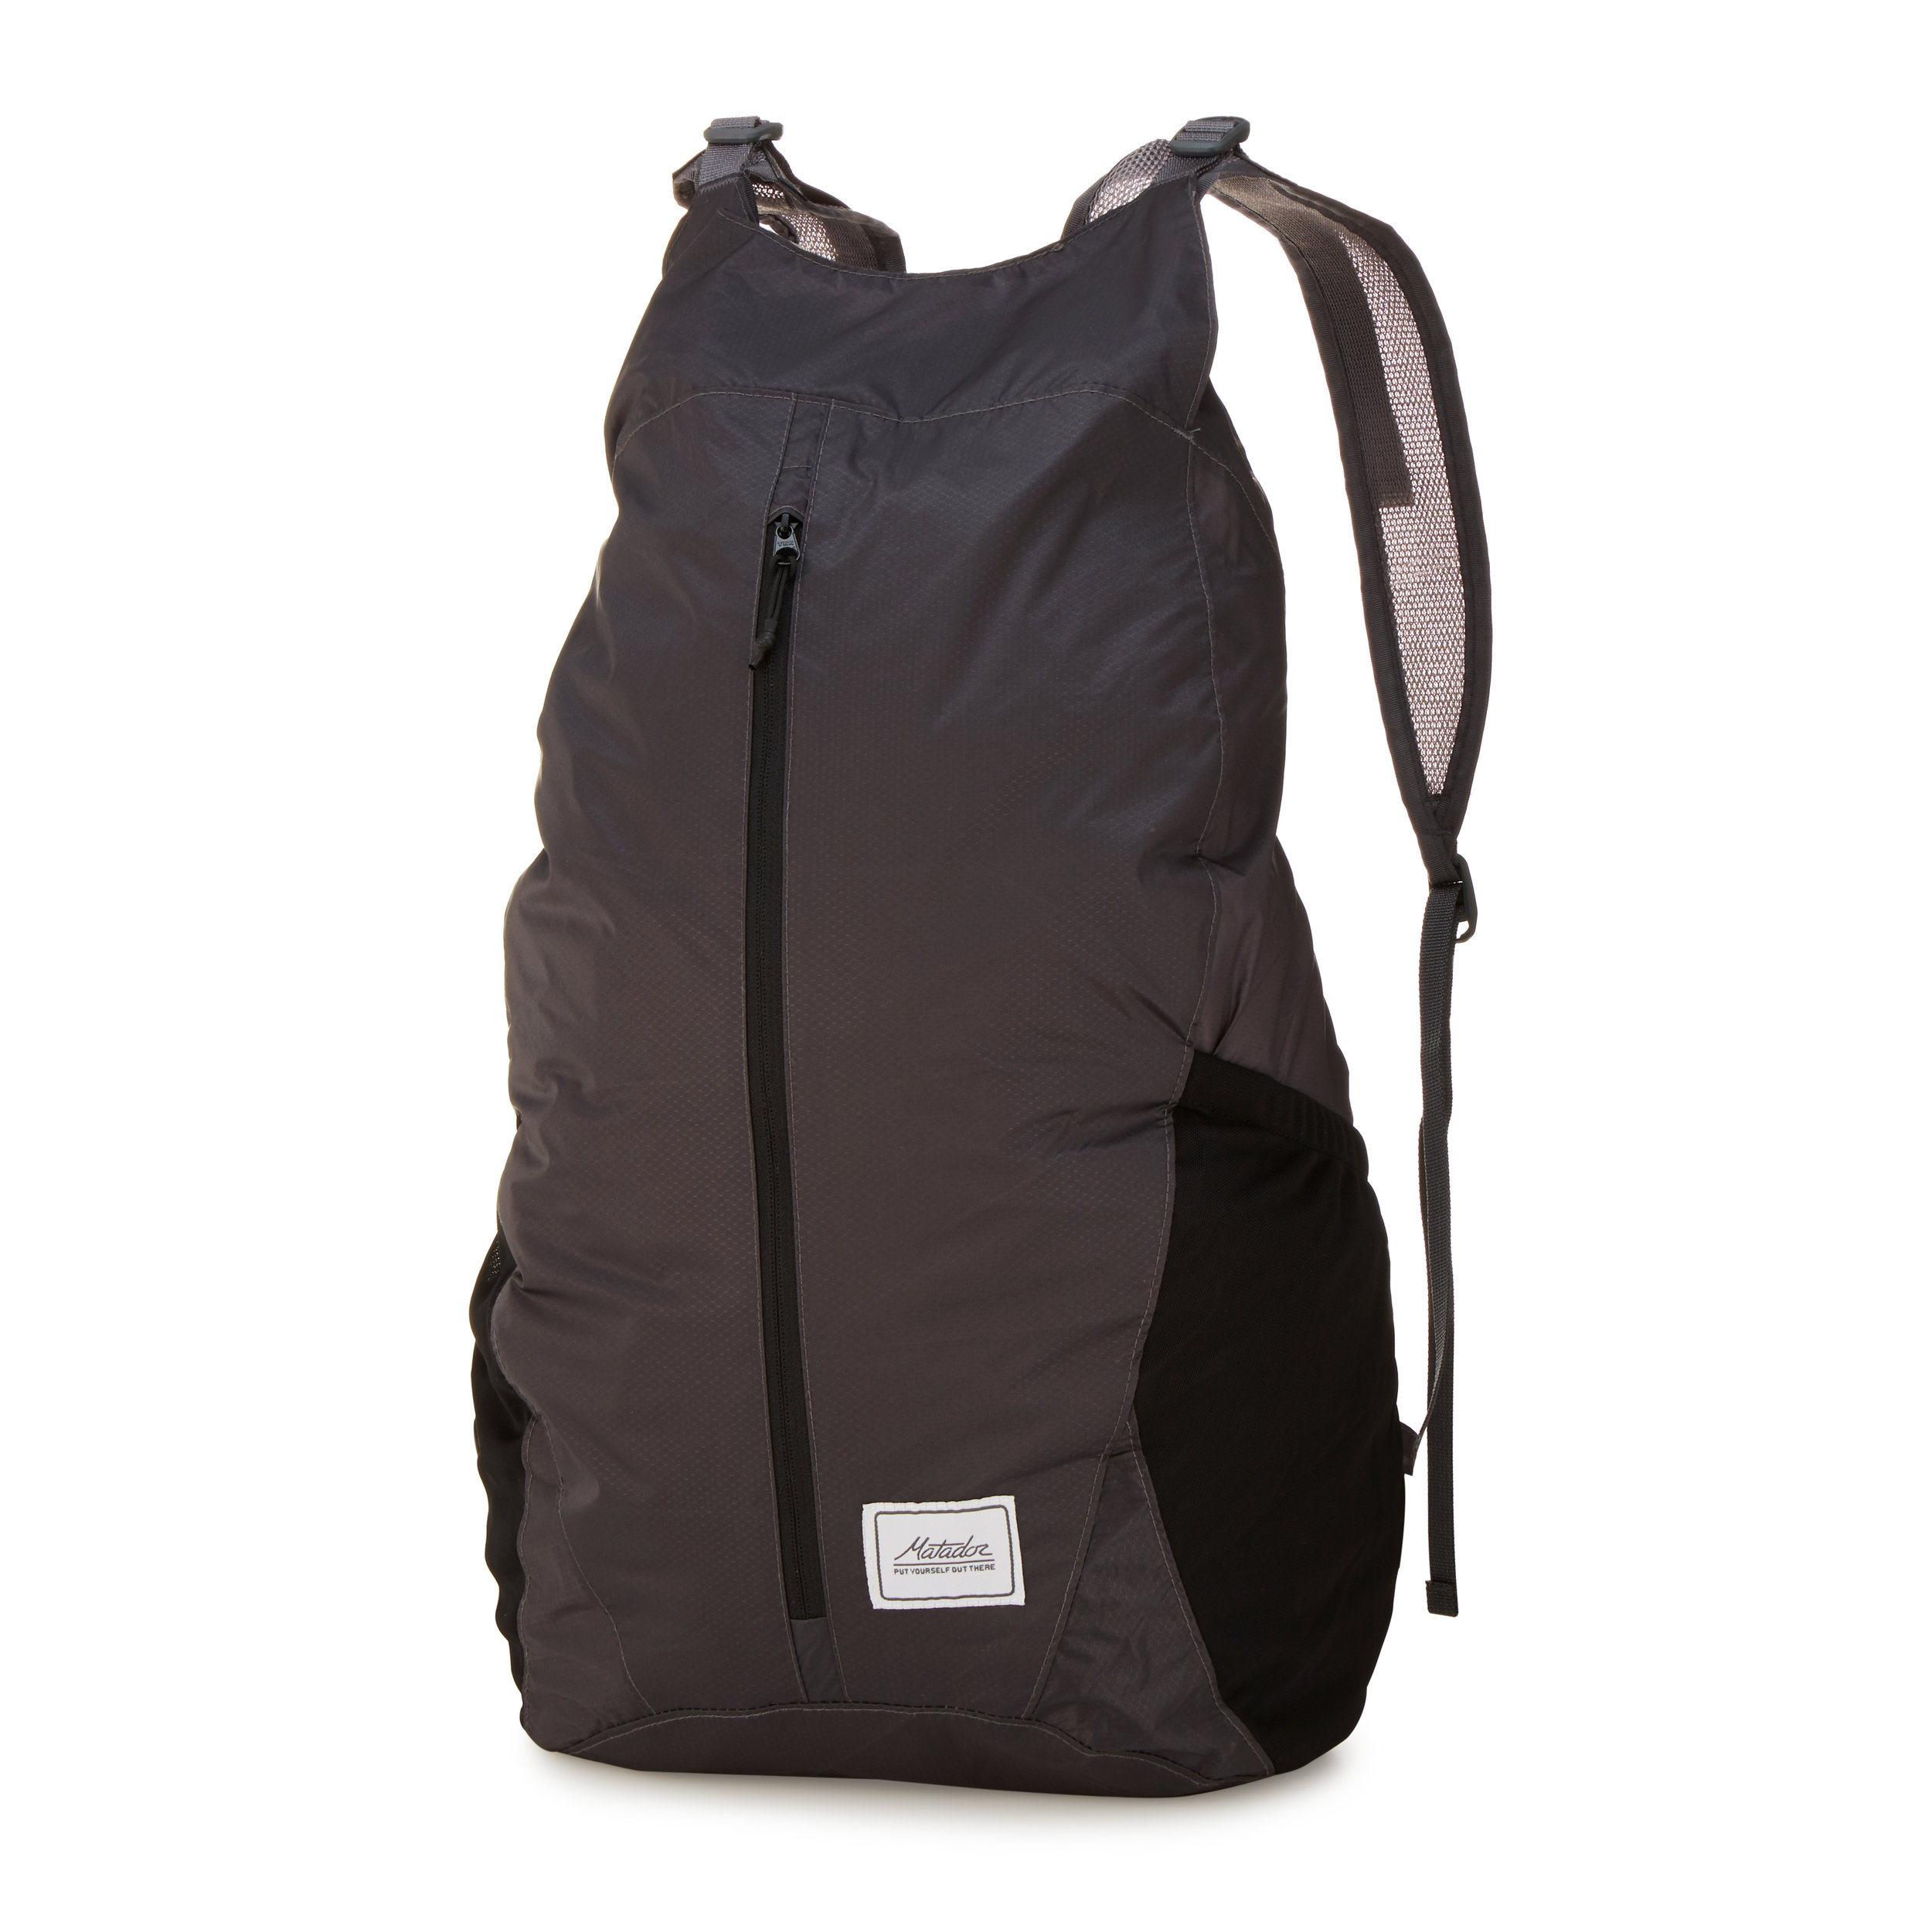 46600_waterproofbackpack.jpg